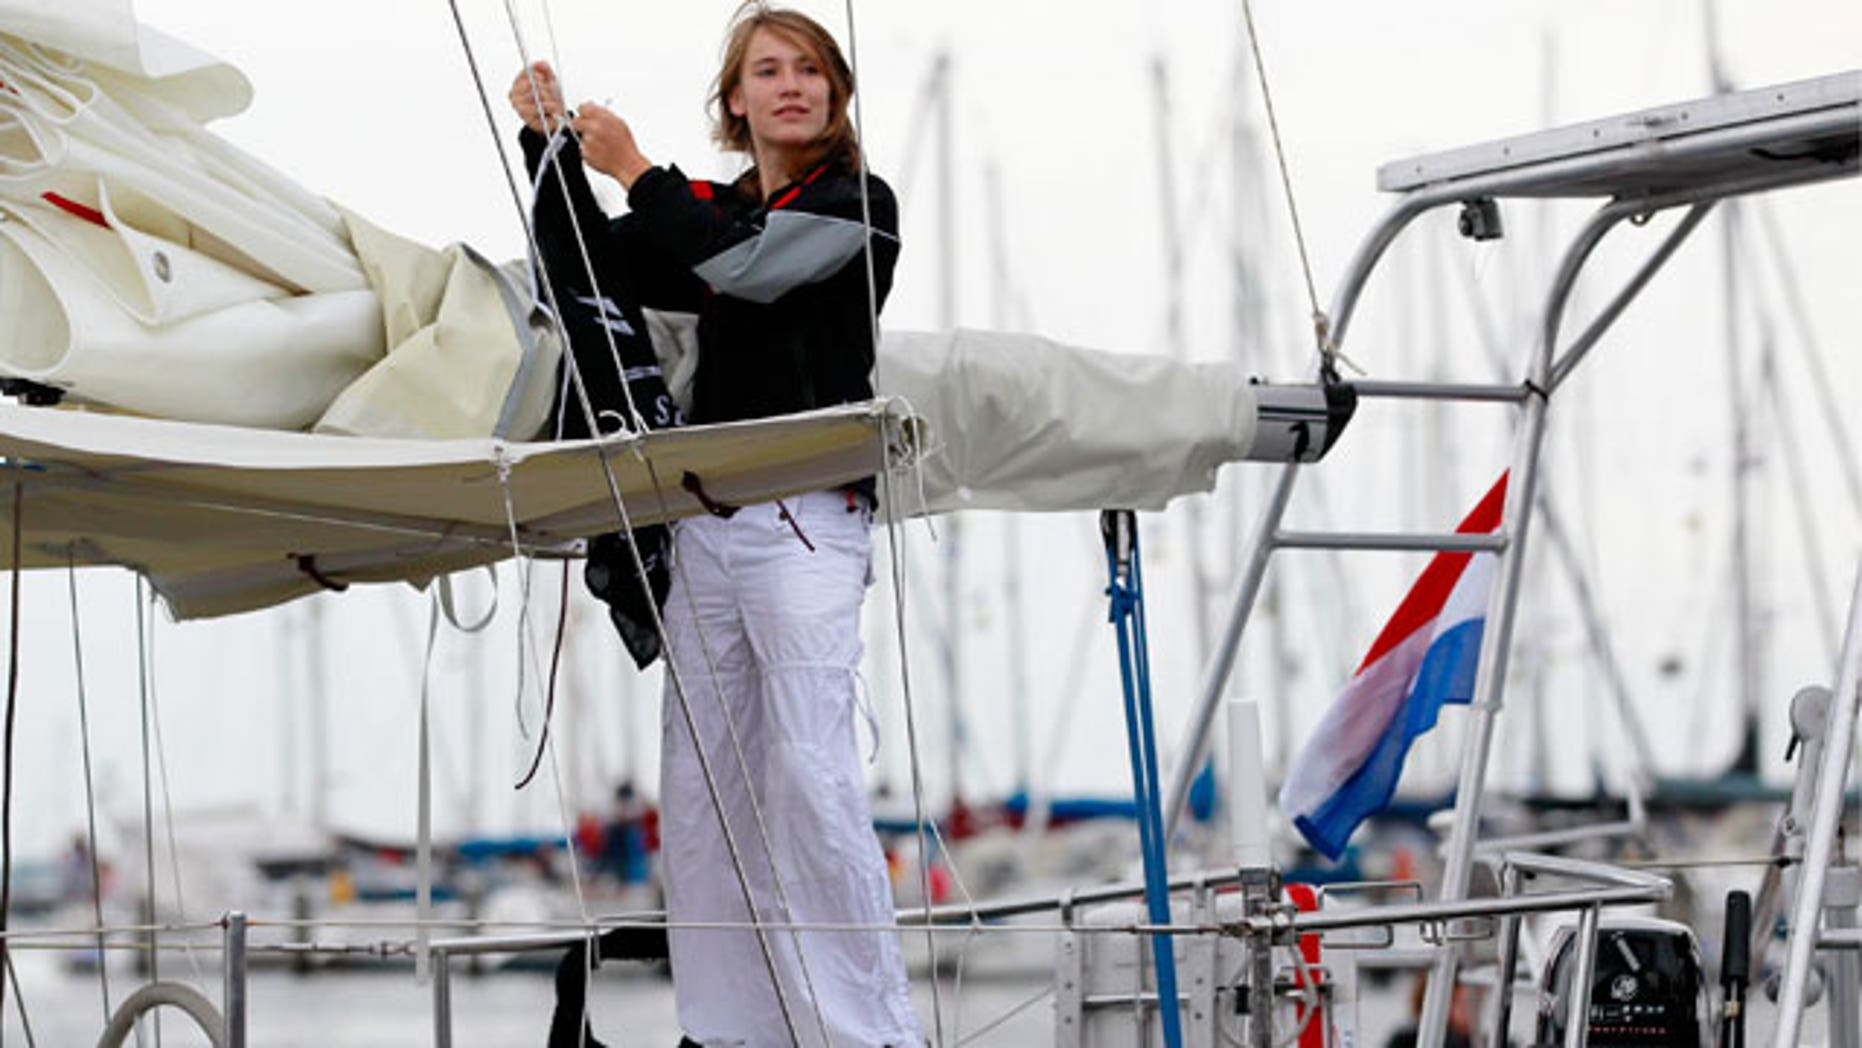 In this file photo dated Wednesday, Aug. 4, 2010 Laura Dekker hoists a flag of The Sea Shepherd Conservation Society on her boat in the harbor of Den Osse, southwest Netherlands. The 14-year-old Dutch girl will try to become the youngest person to sail solo around the world when she sets off from Portugal on Saturday Aug. 21, 2010. Laura Dekker's ambition of completing the yearlong trip has fueled a global debate over the wisdom of allowing young sailors to take on the tremendous risks of sailing the high seas alone.